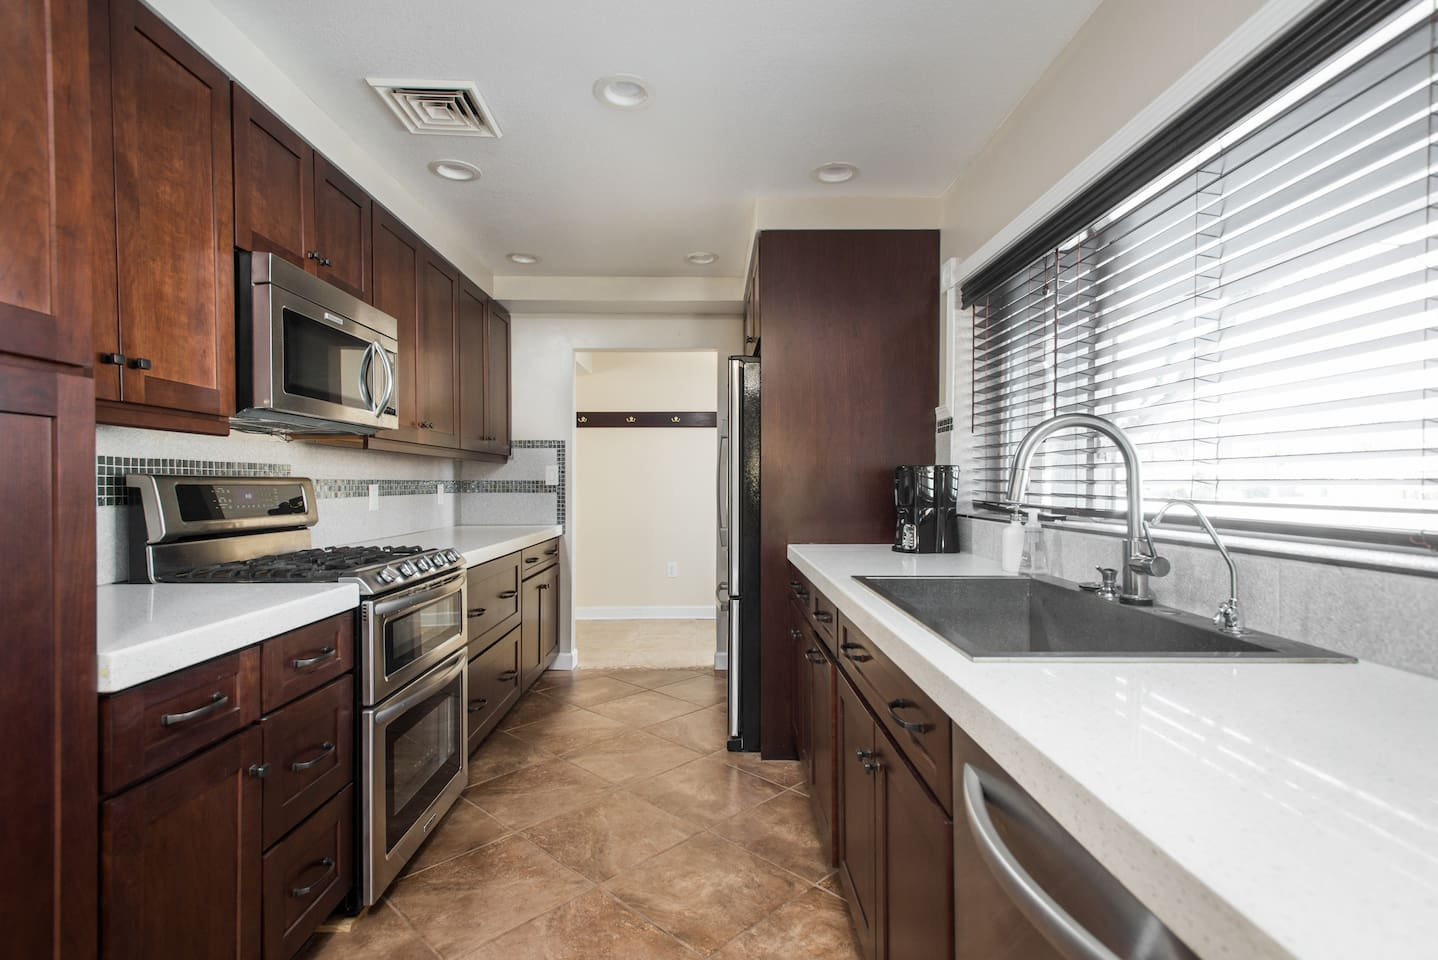 Fully equipped and newly renovated kitchen with stainless steel appliances and quartz countertops.